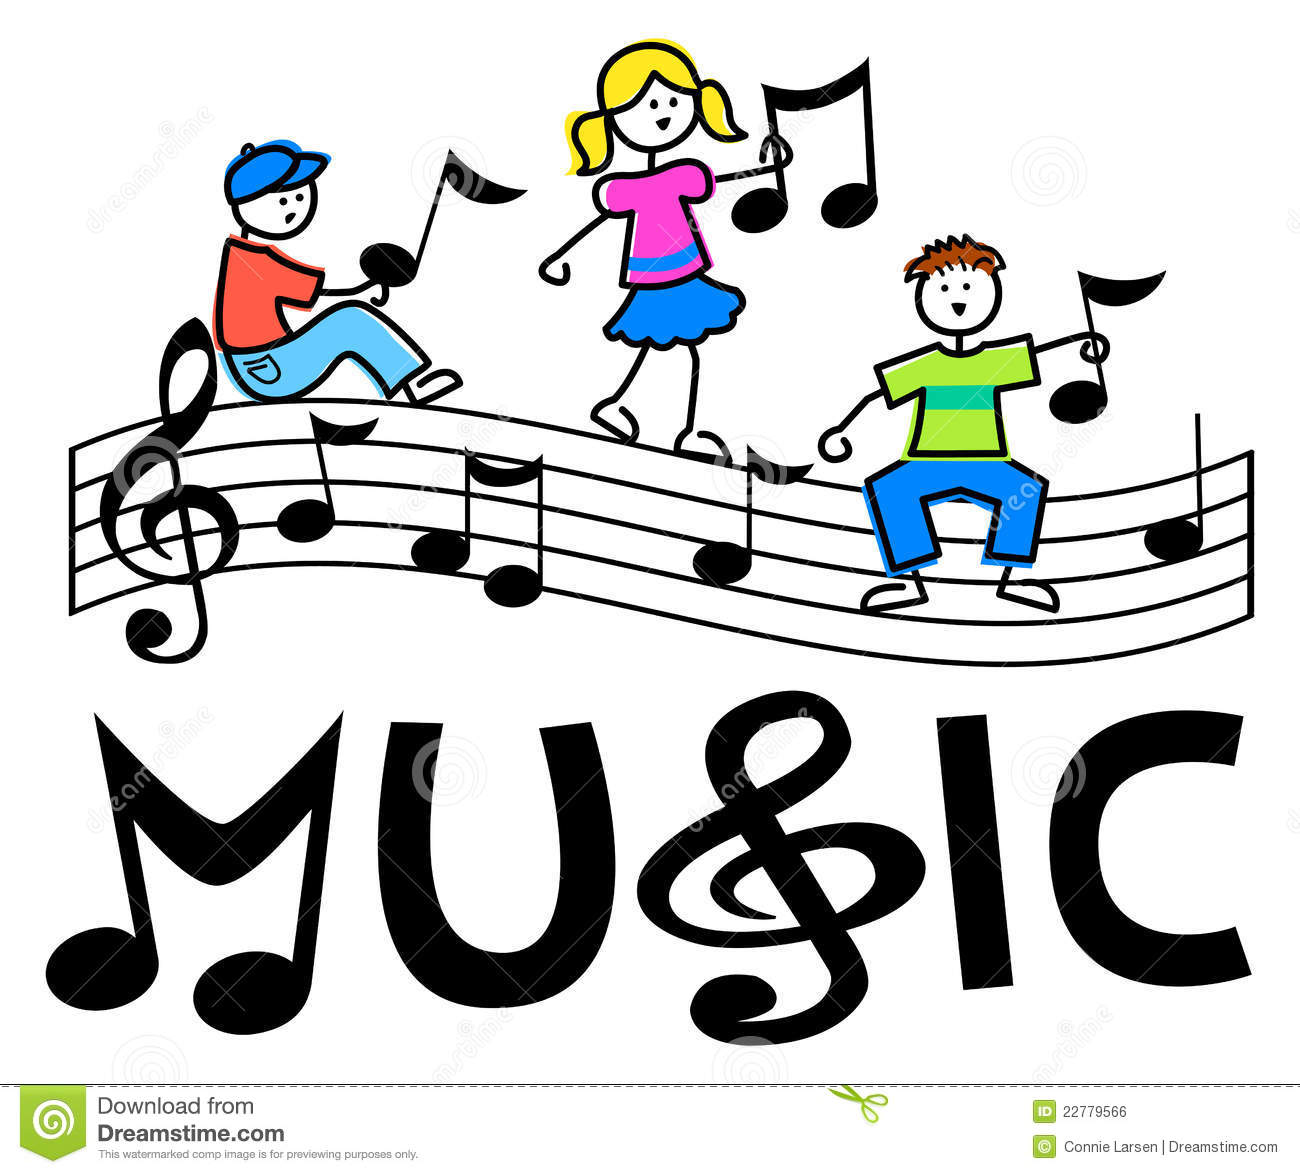 Animated music clipart black and white stock Cartoon Music Clipart | Free download best Cartoon Music Clipart on ... black and white stock